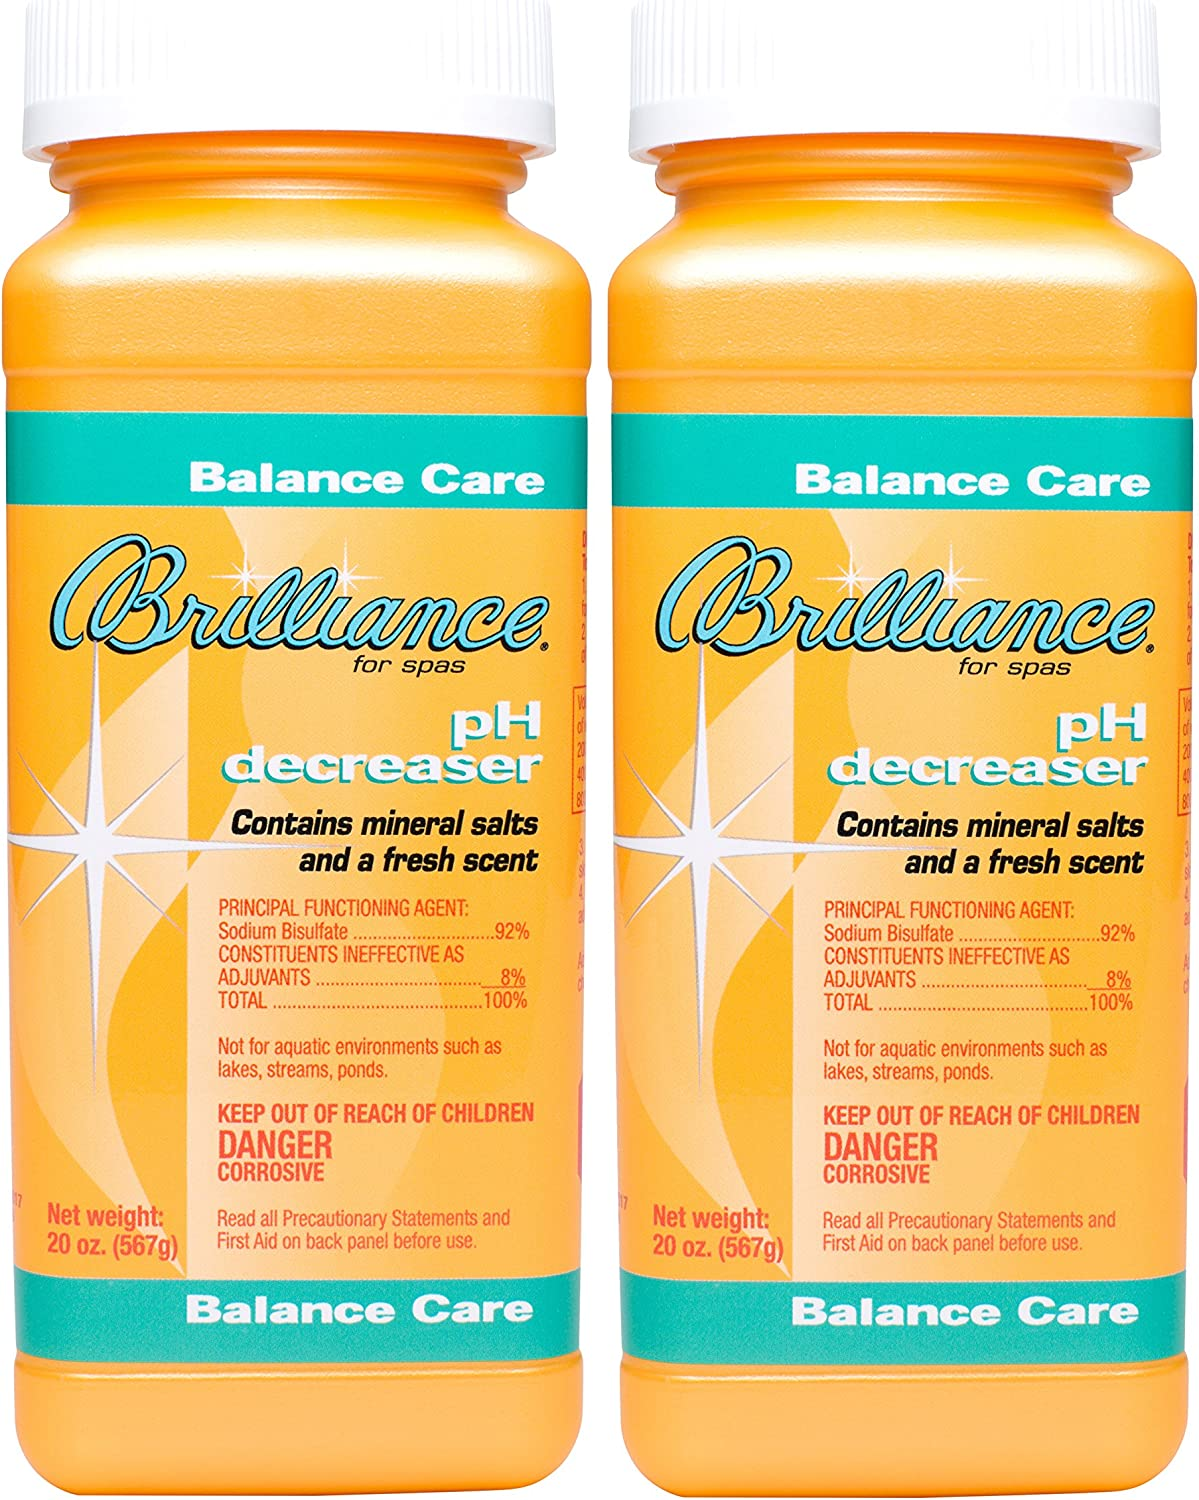 Brilliance for Spas ph 35% OFF Decreaser 20 Pack Limited time trial price - oz 2